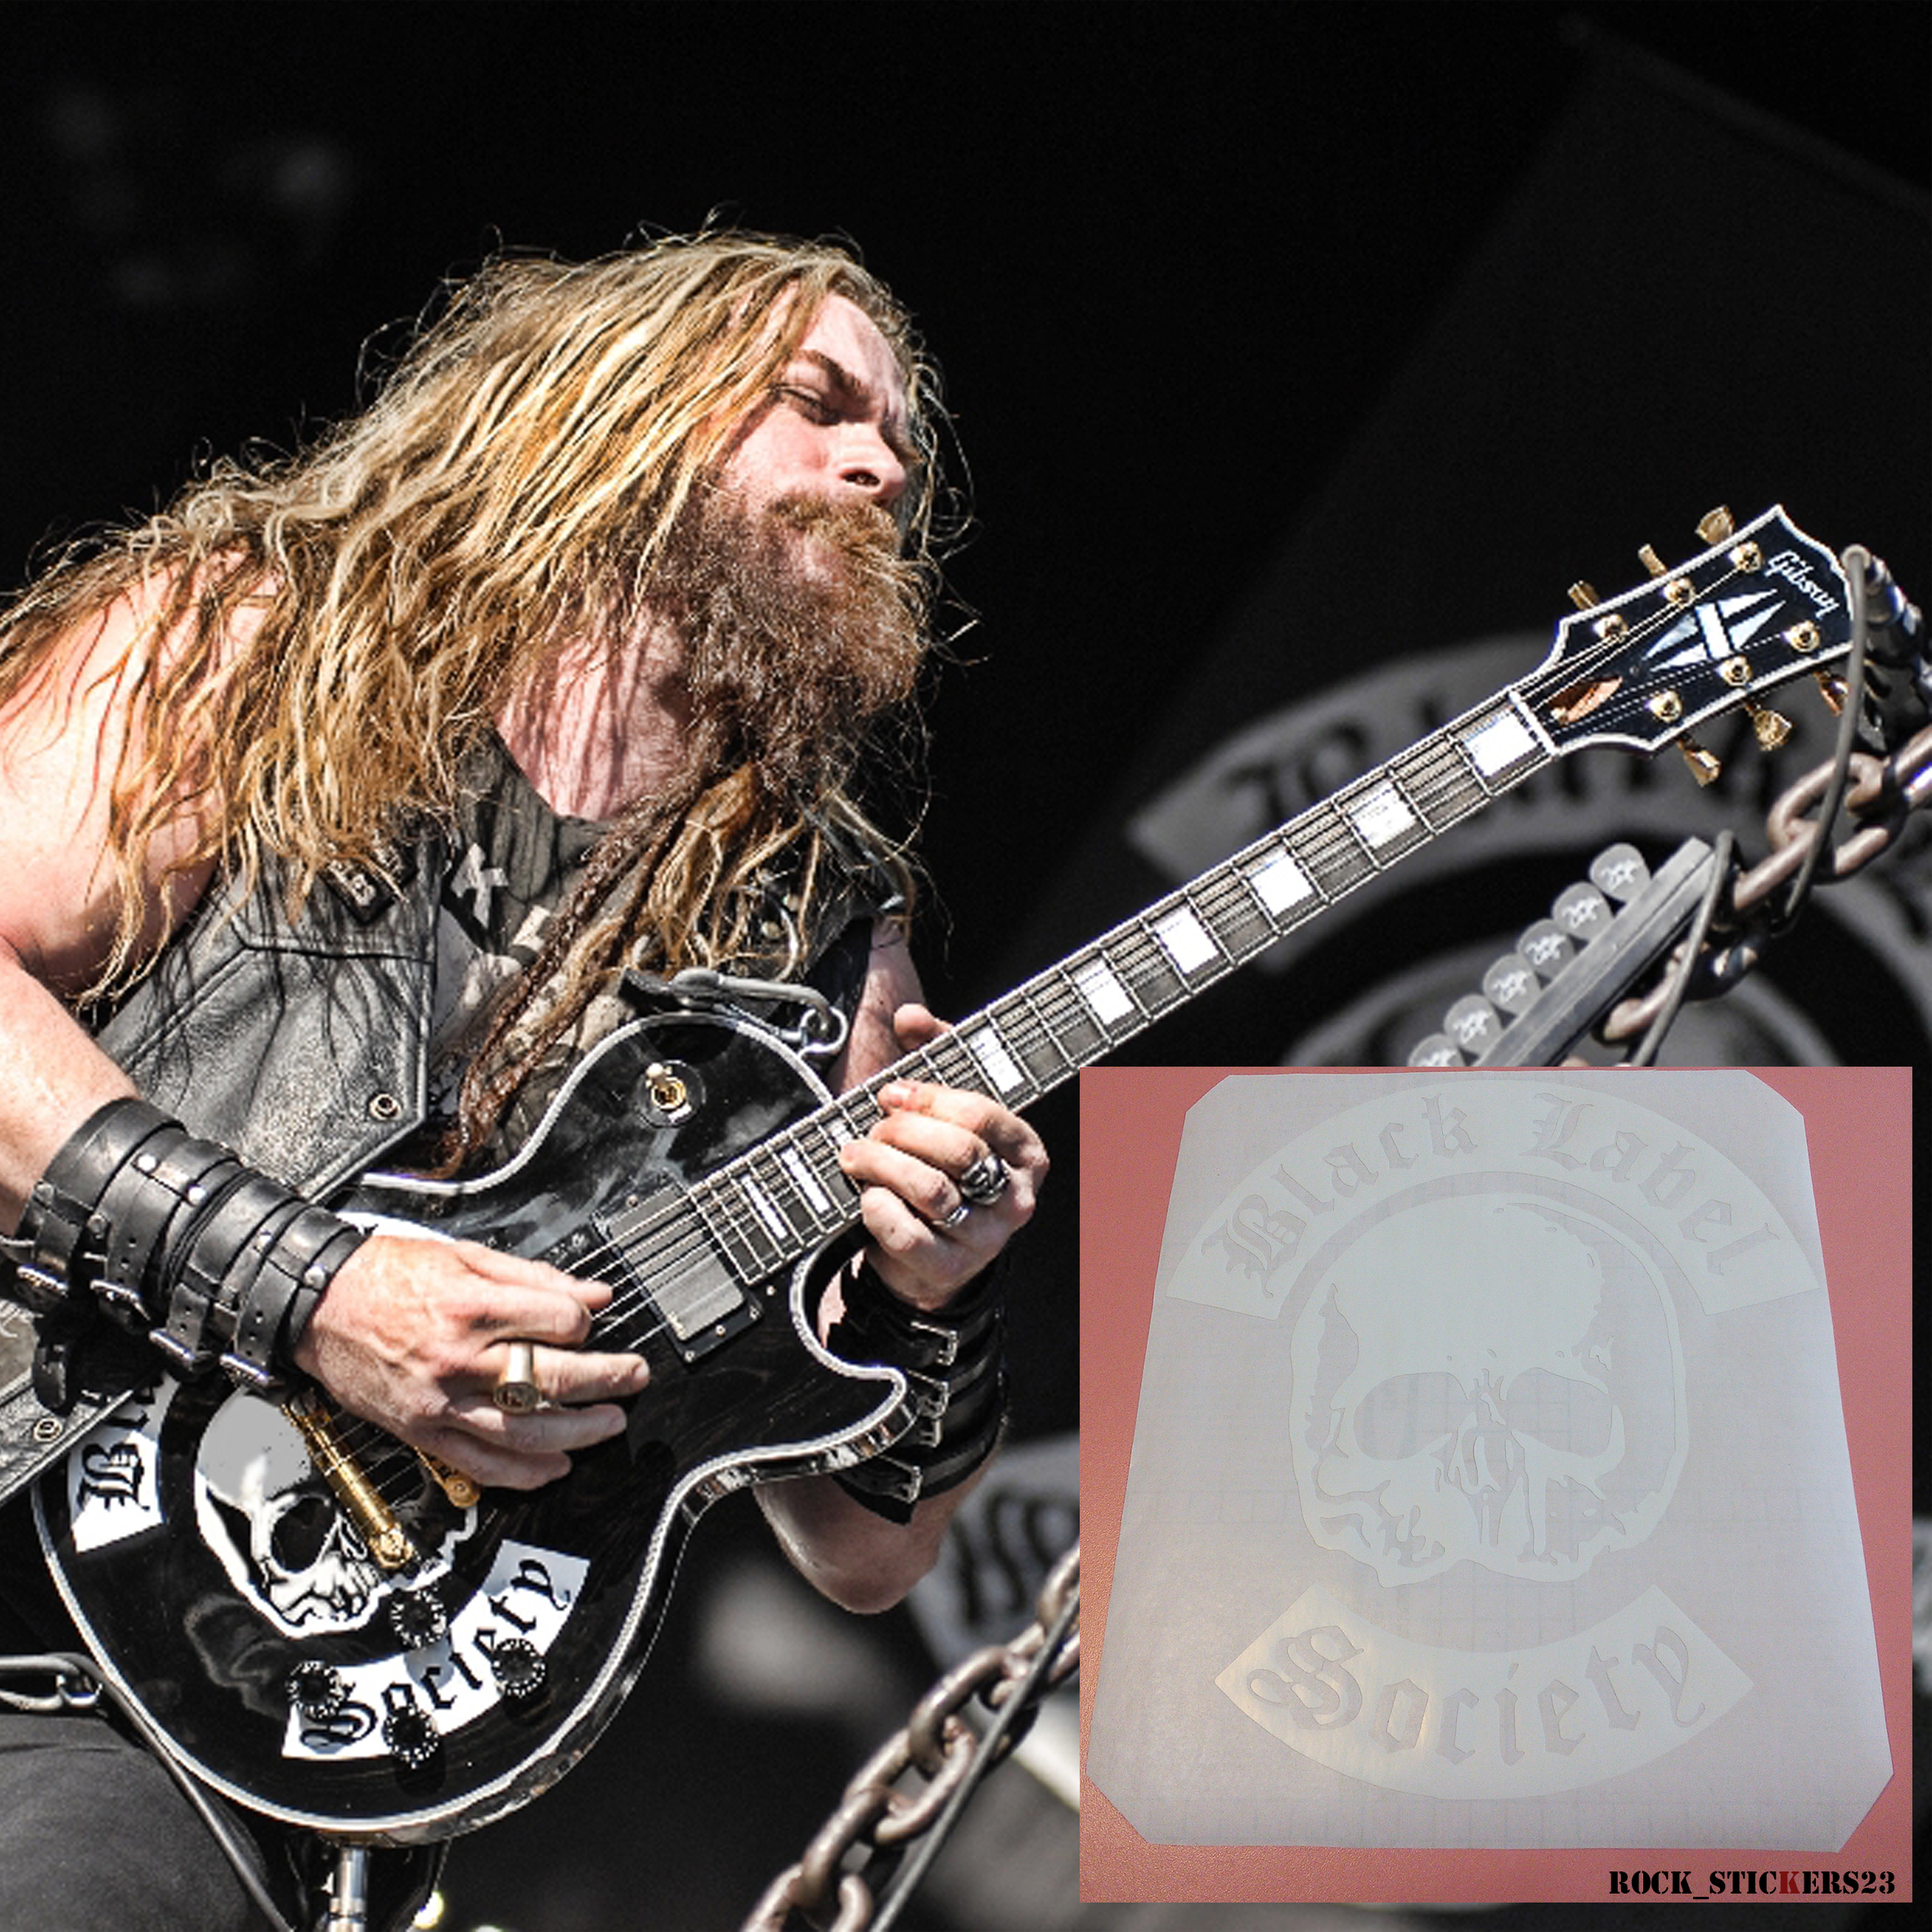 Zakk-Wylde stickers